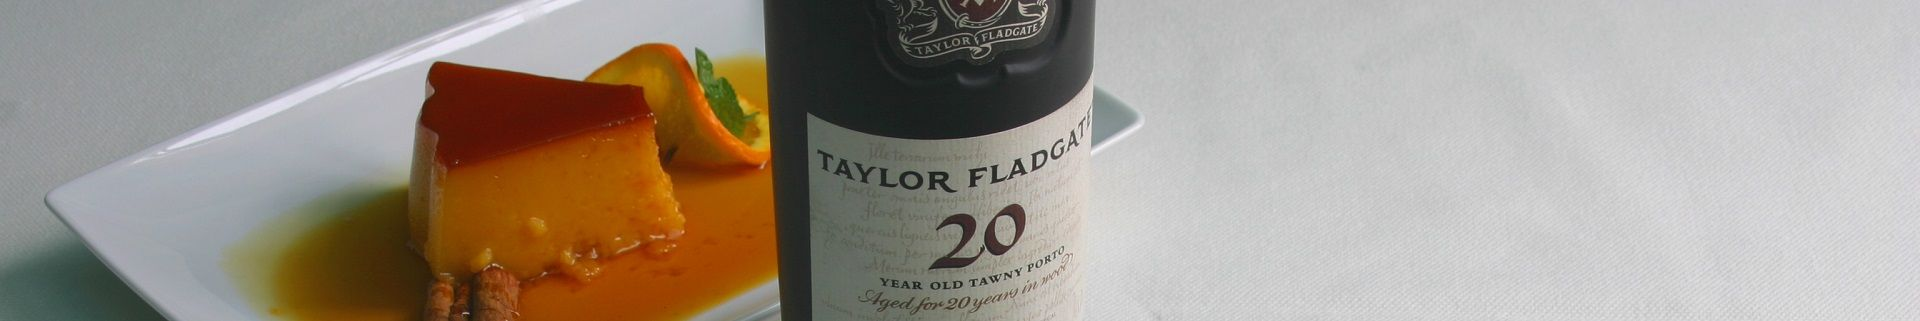 Pairing Port & Food: Aged Tawny Ports - Taylor Fladgate